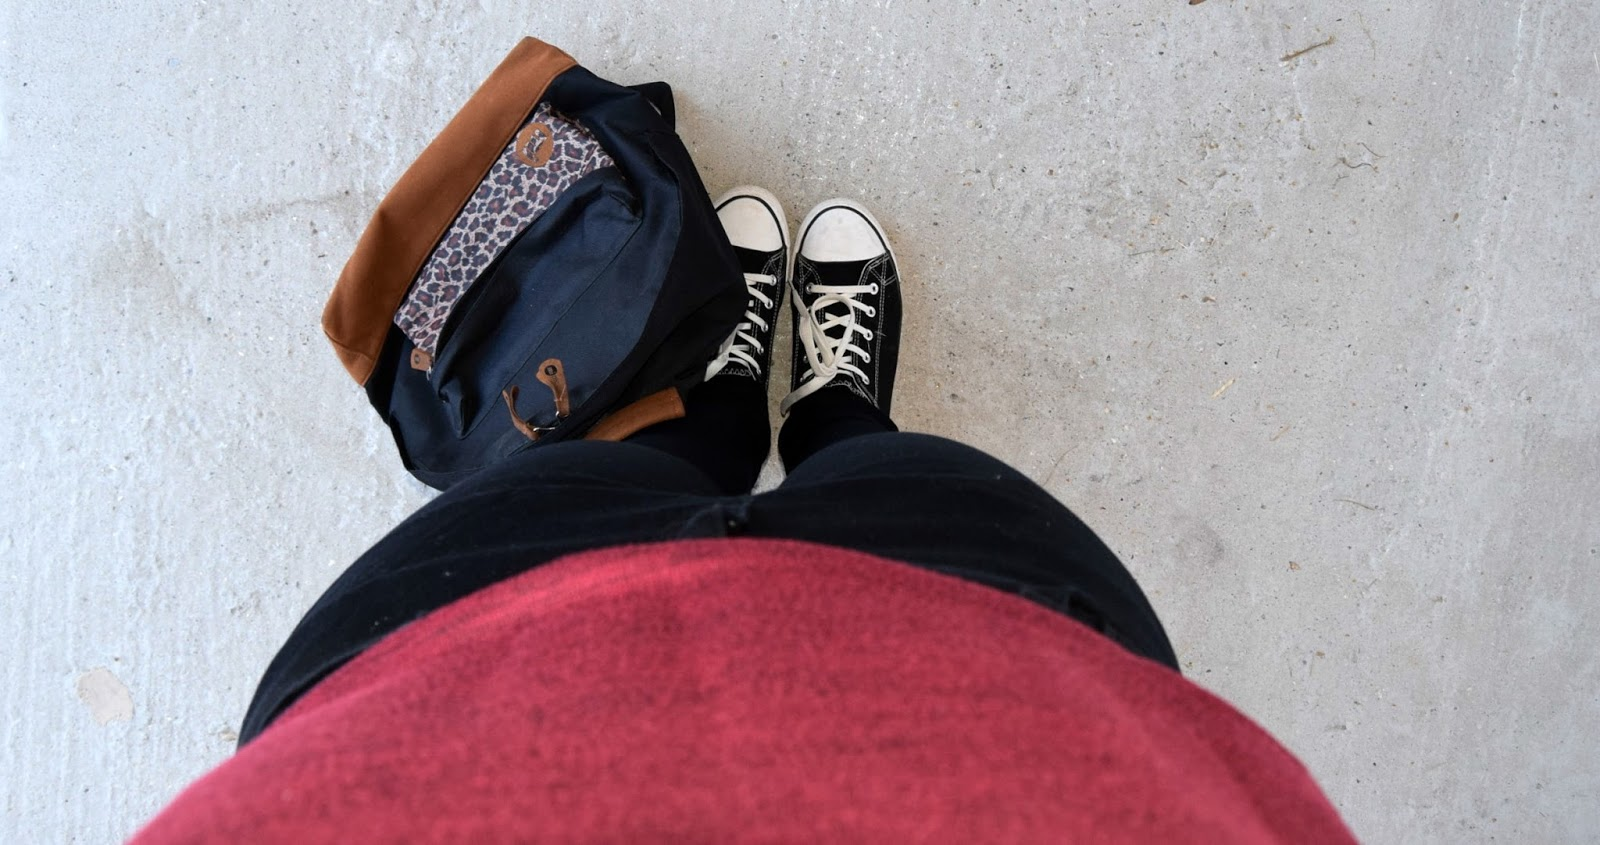 Looking down on an outfit of a dark red top, black skinny jeans, black and white converses and a black MI backpack with a leopard print front pocket